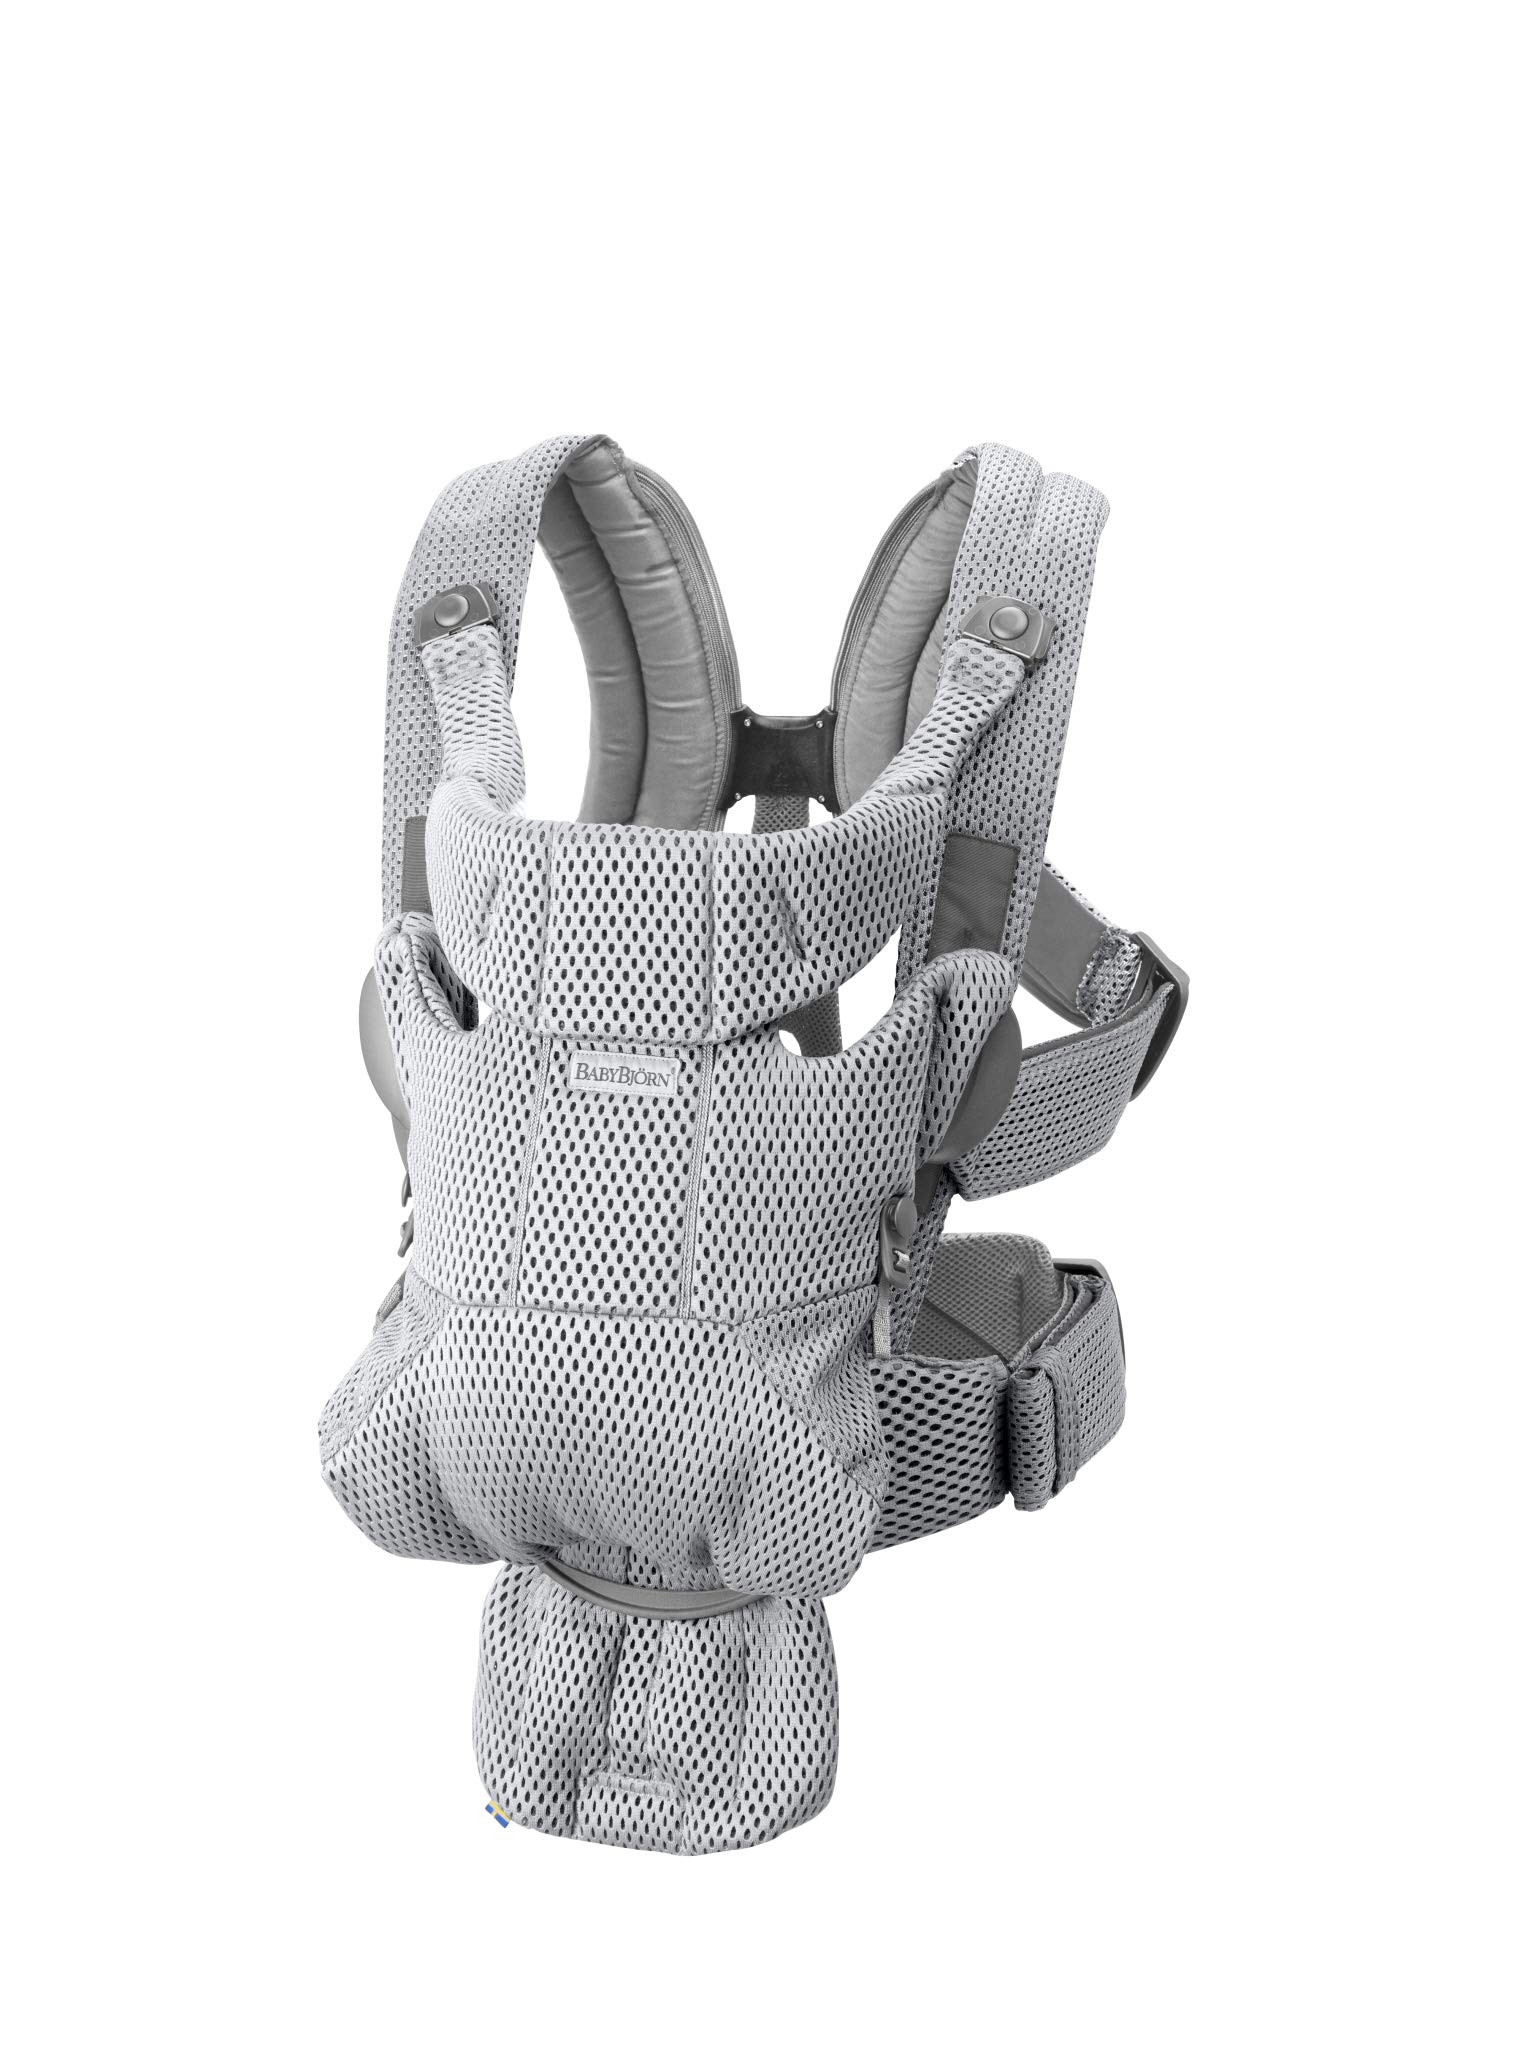 BABYBJÖRN Baby Carrier Move, 3D Mesh, Grey Baby Bjorn Excellent comfort with built-in back support and waist belt Easy to put on and take off Soft and airy design in cool 3D mesh 1